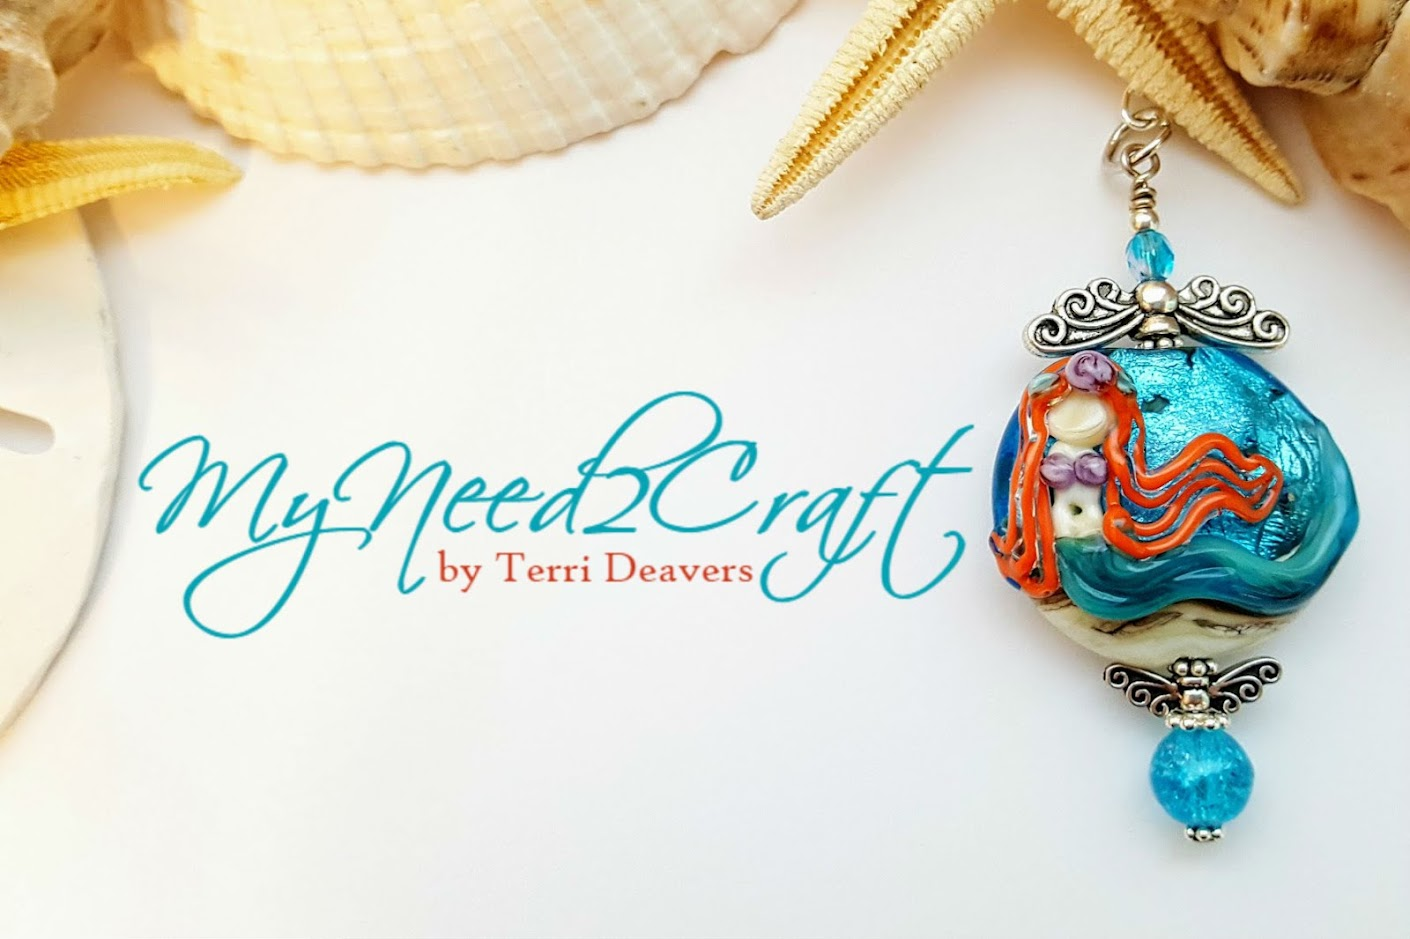 MyNeed2Craft by Terri Deavers